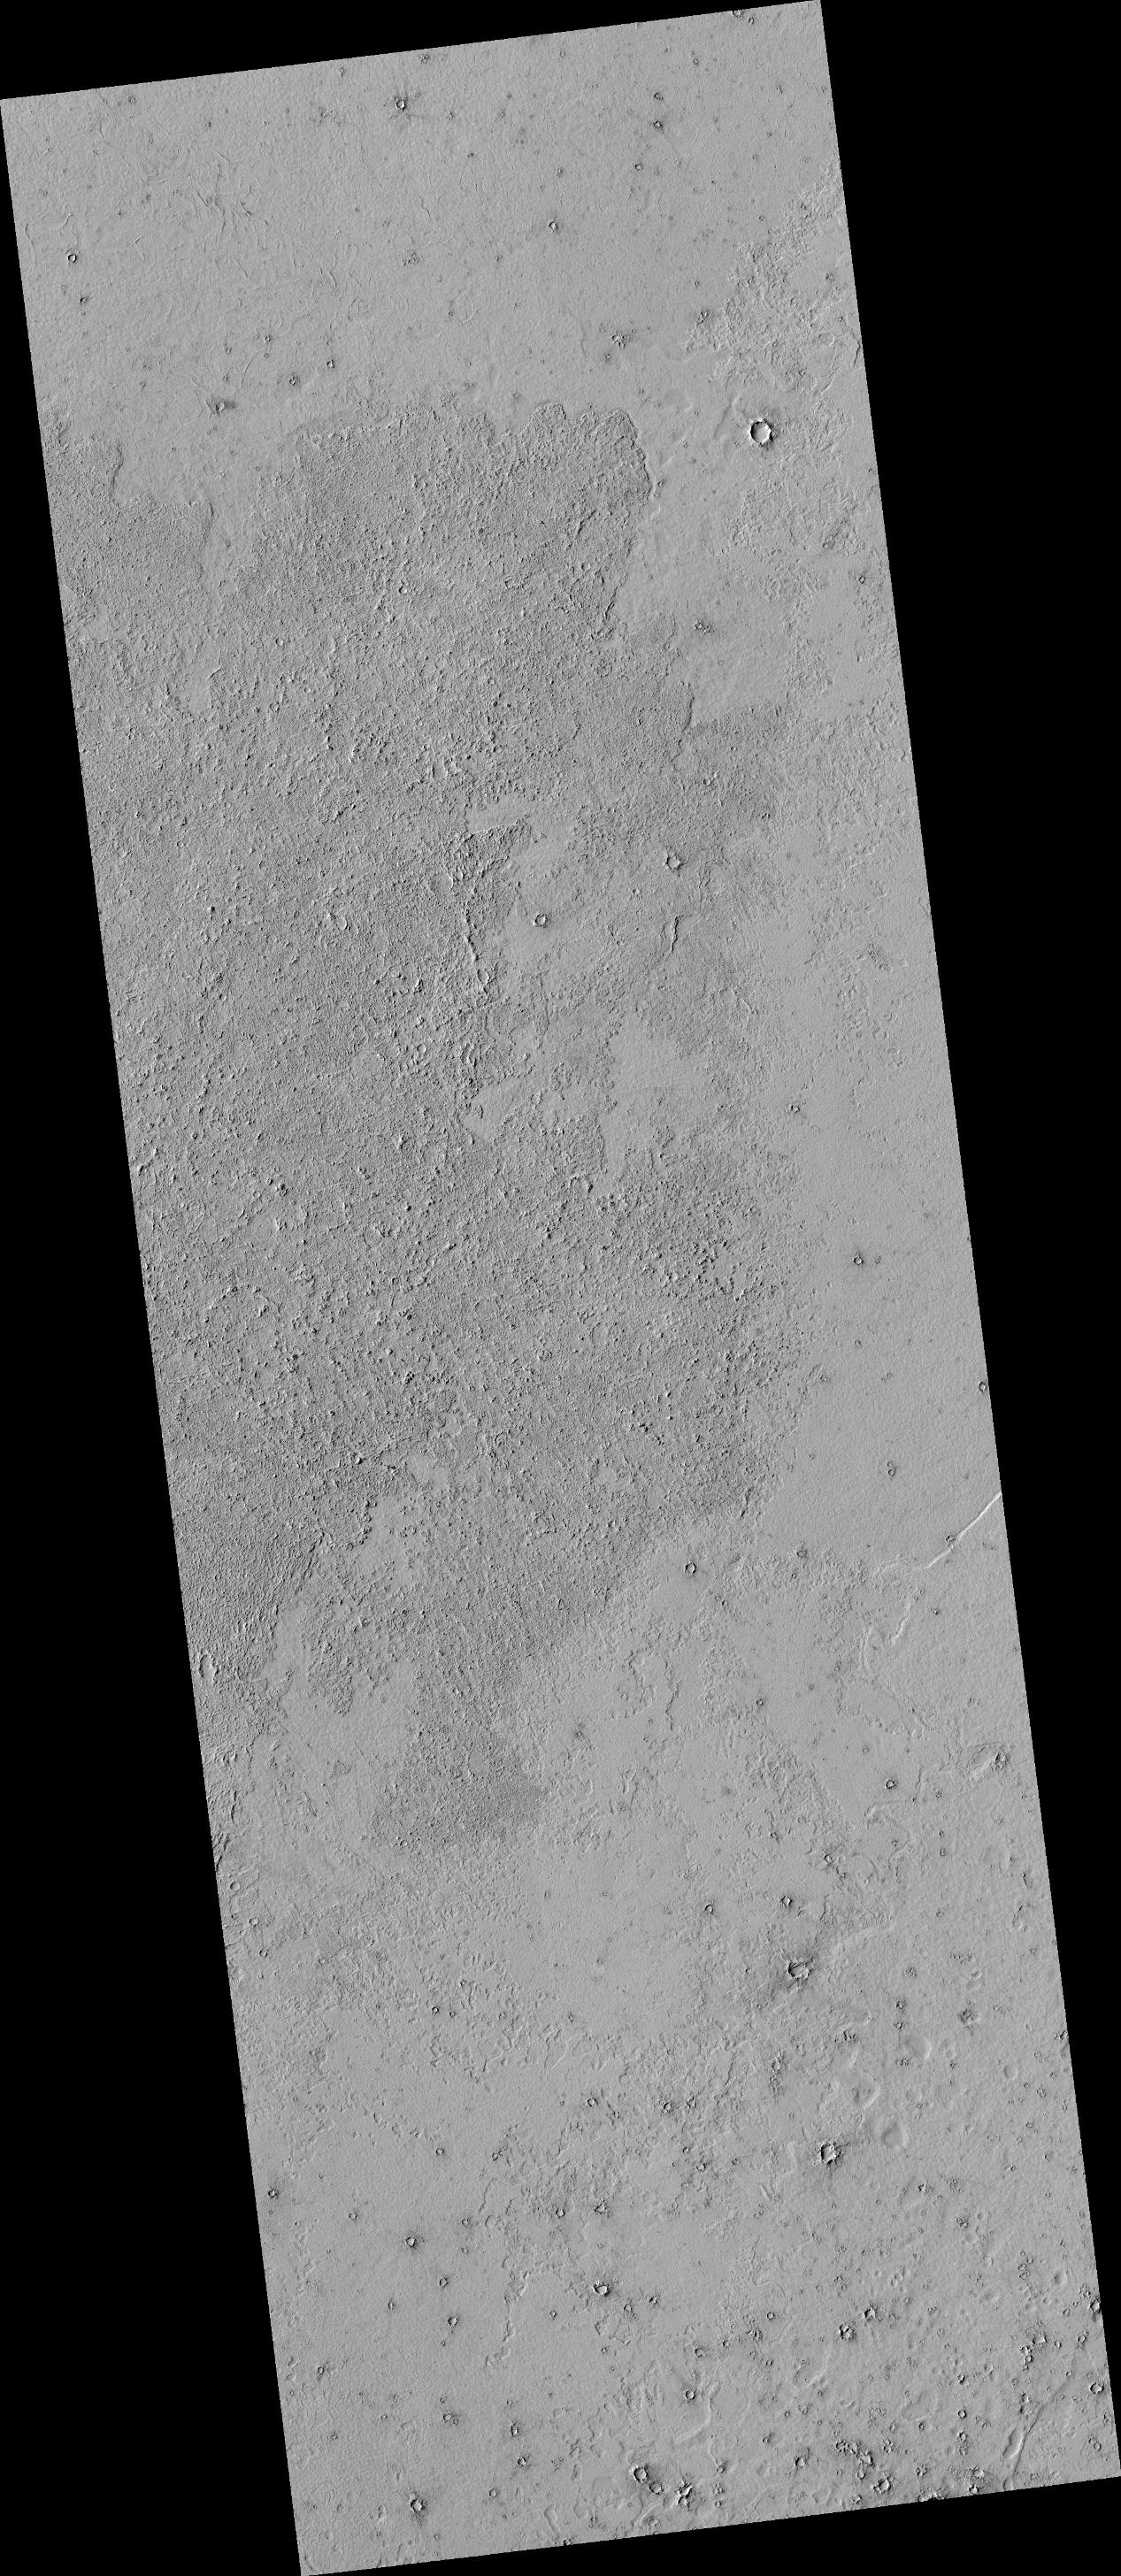 This image shows details of the lava covered plains near the equator of Mars. The darker looking area has a rough lava surface with all the shadows giving the region a darker appearance.